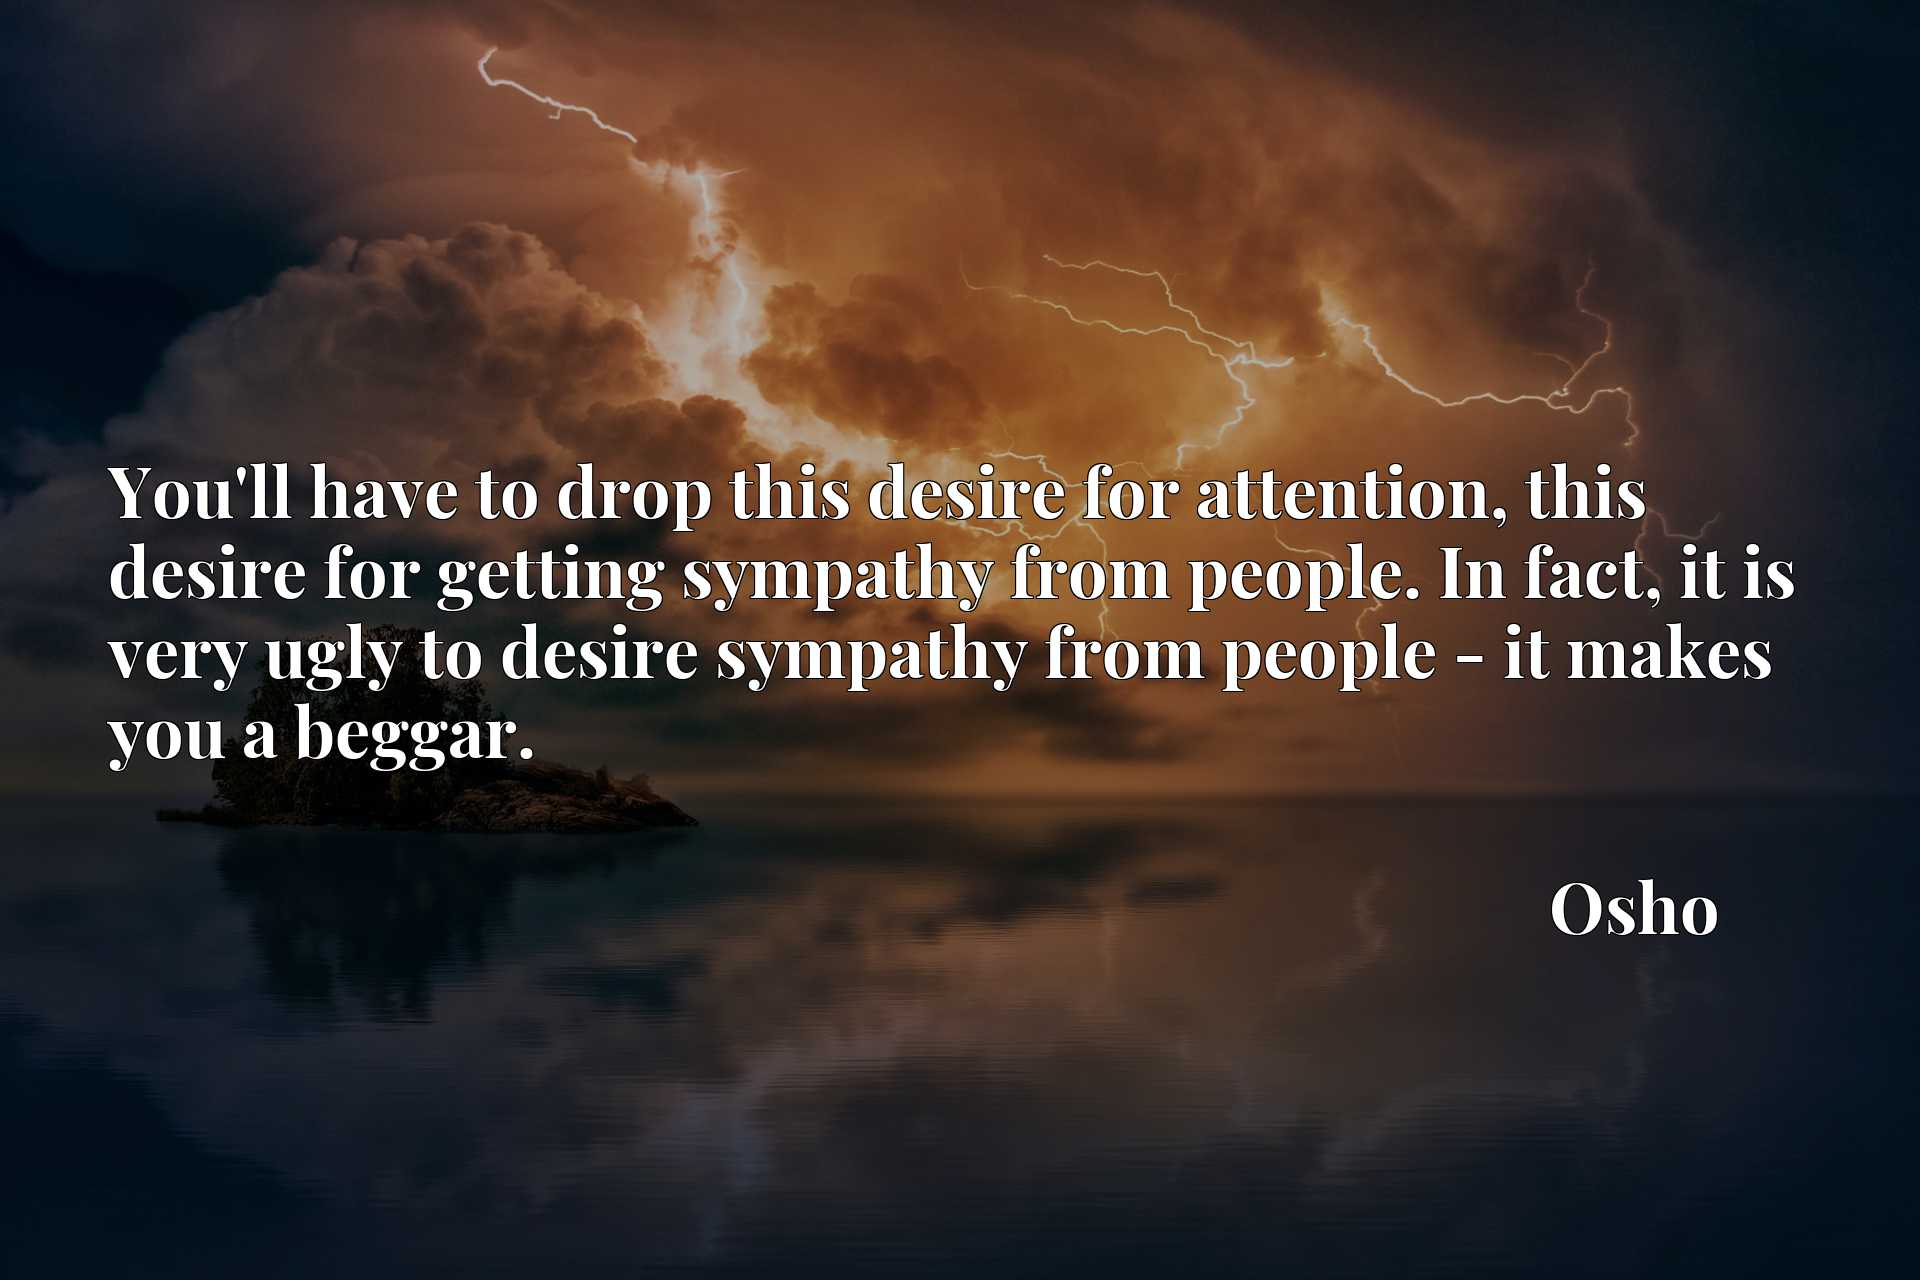 You'll have to drop this desire for attention, this desire for getting sympathy from people. In fact, it is very ugly to desire sympathy from people - it makes you a beggar.